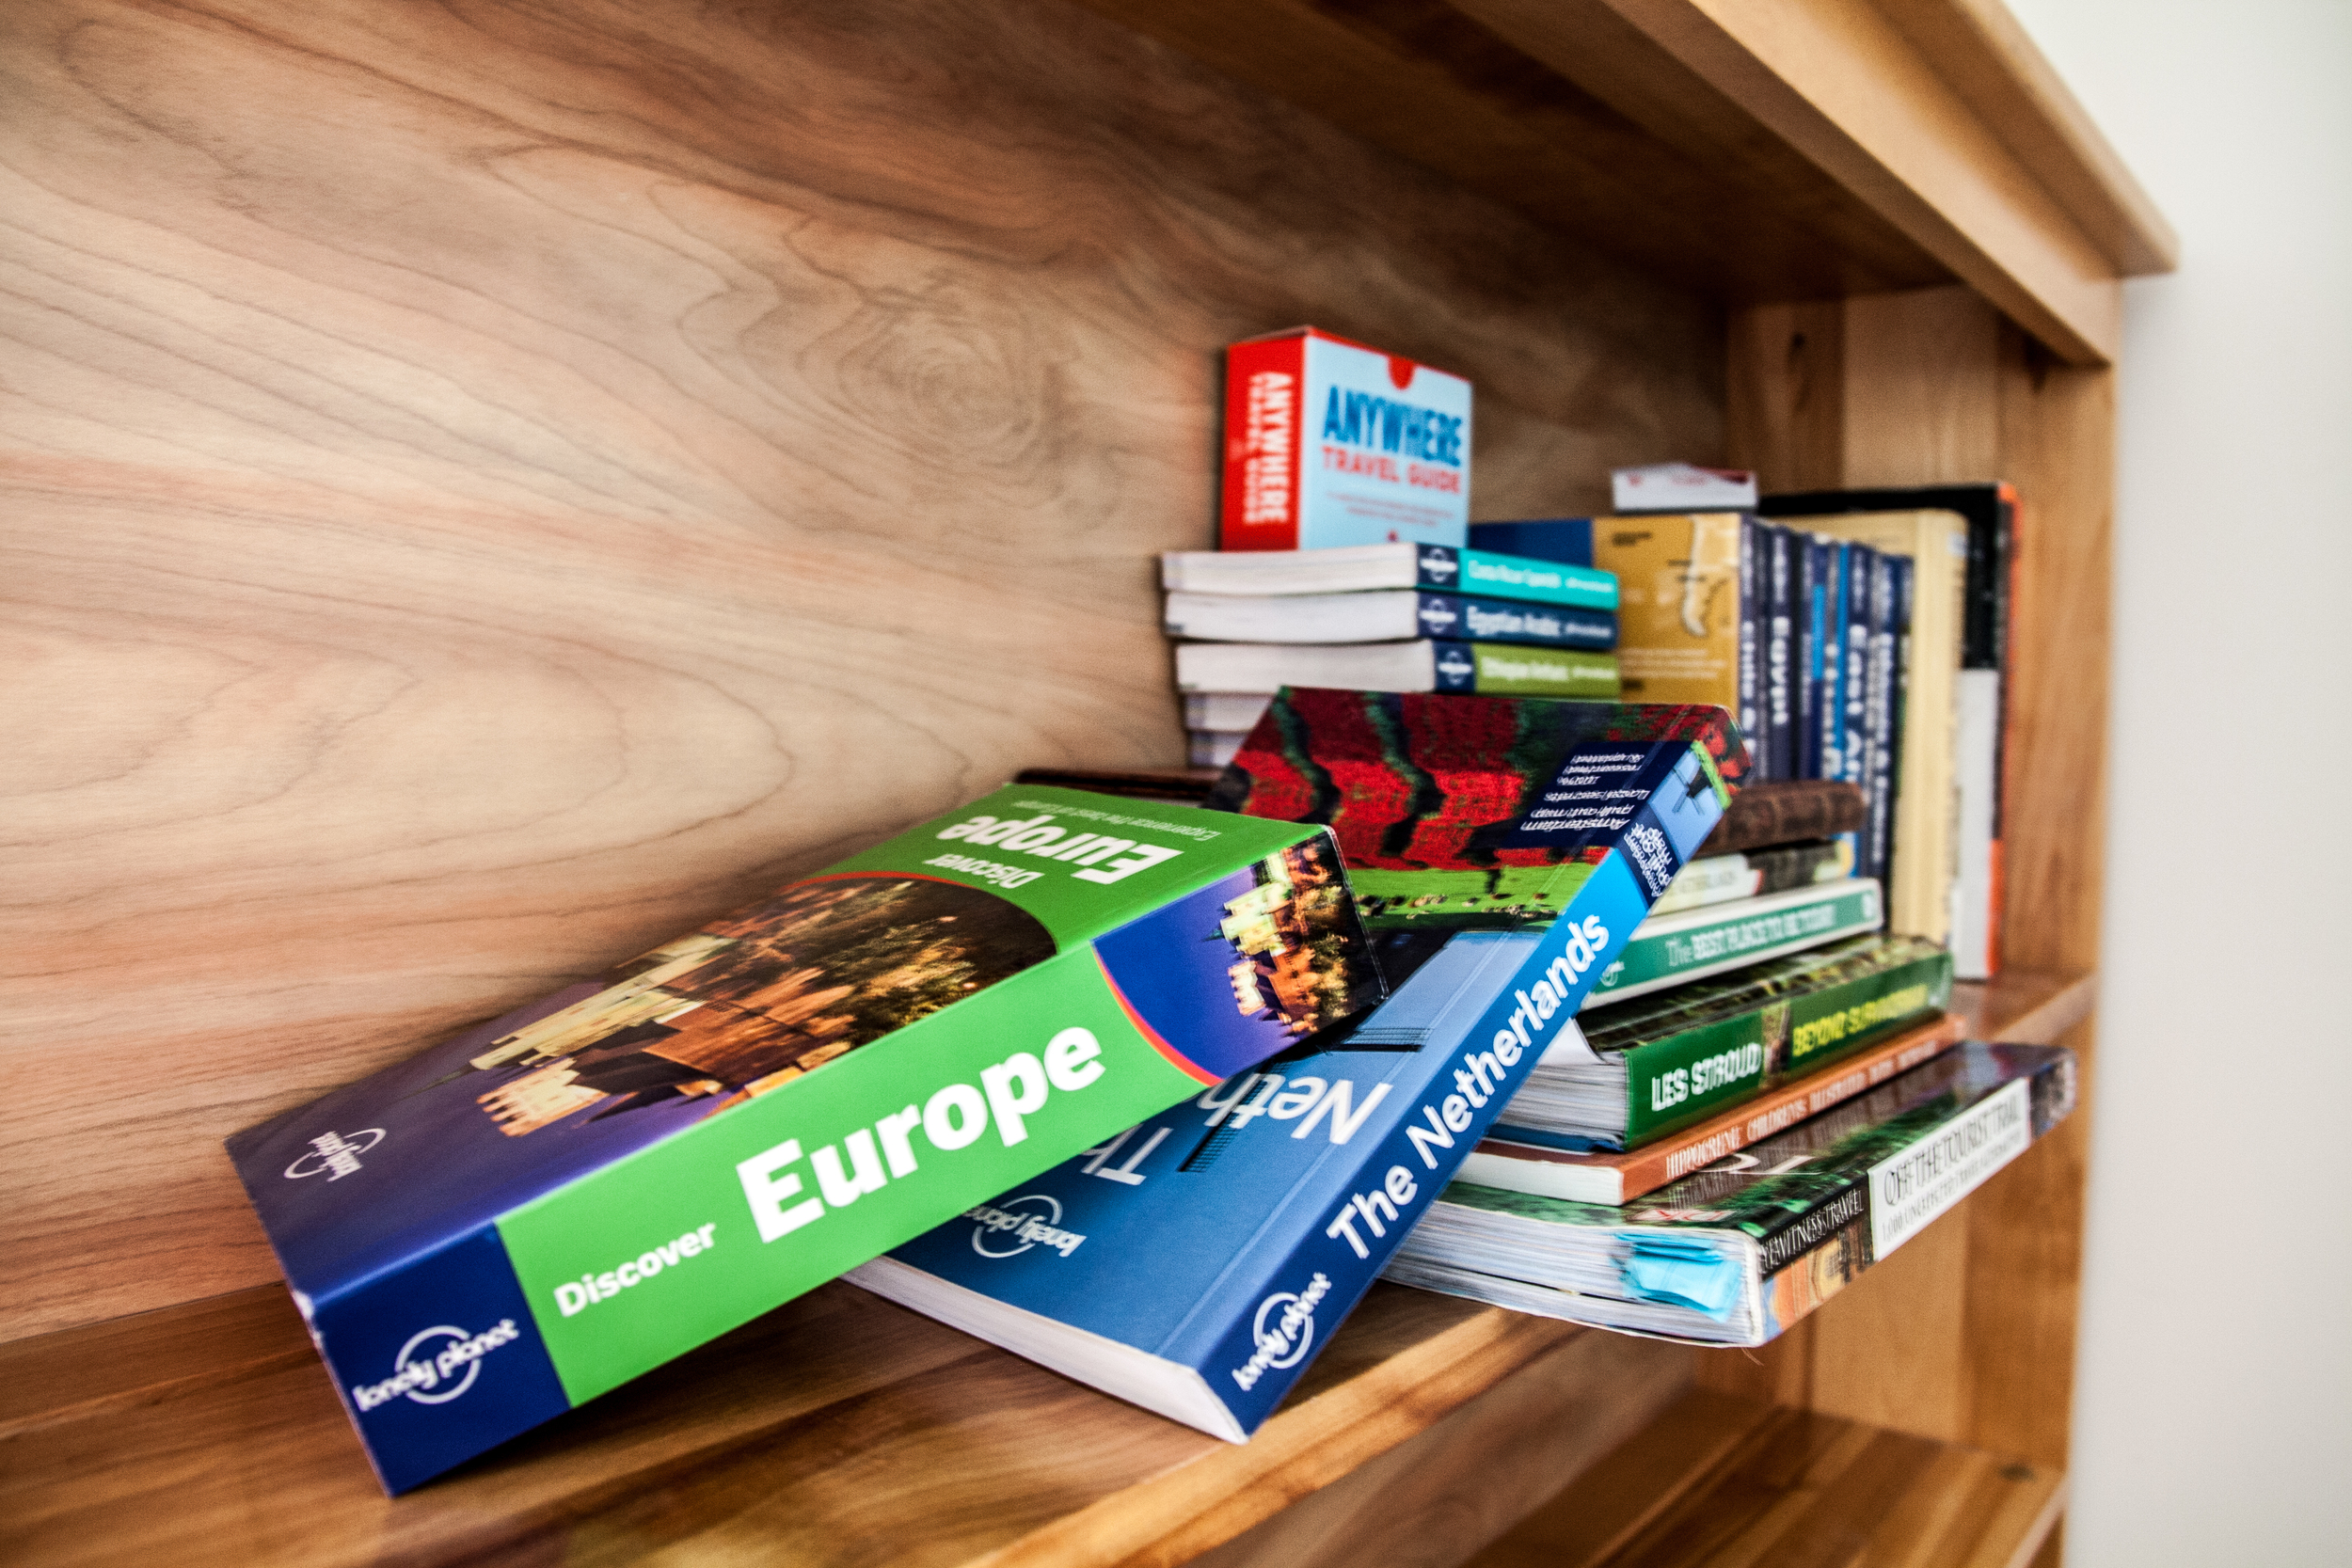 These travel books represent the sum of our fabulousadventuresto-date, and those still to come! Hope,courage and nostalgiaon an otherwise empty shelf...